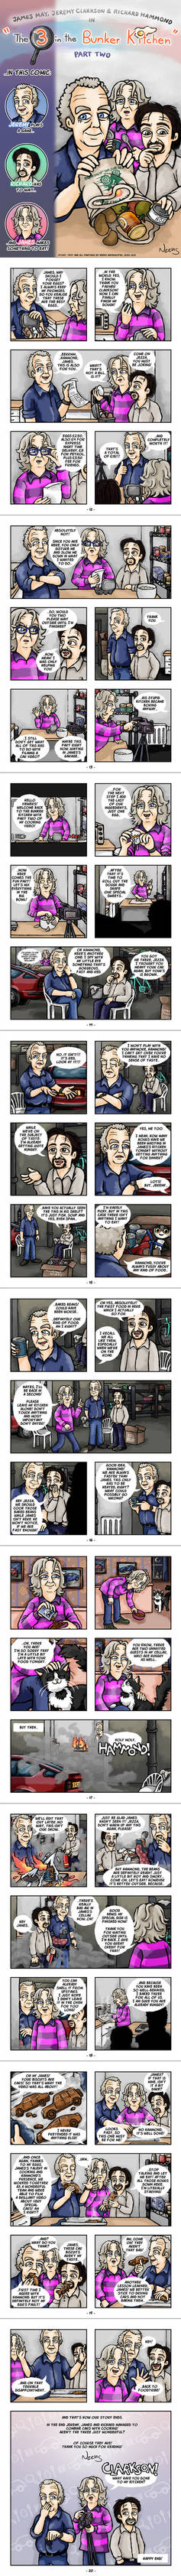 Comic 'The 3 in the Bunker Kitchen' - Part Two